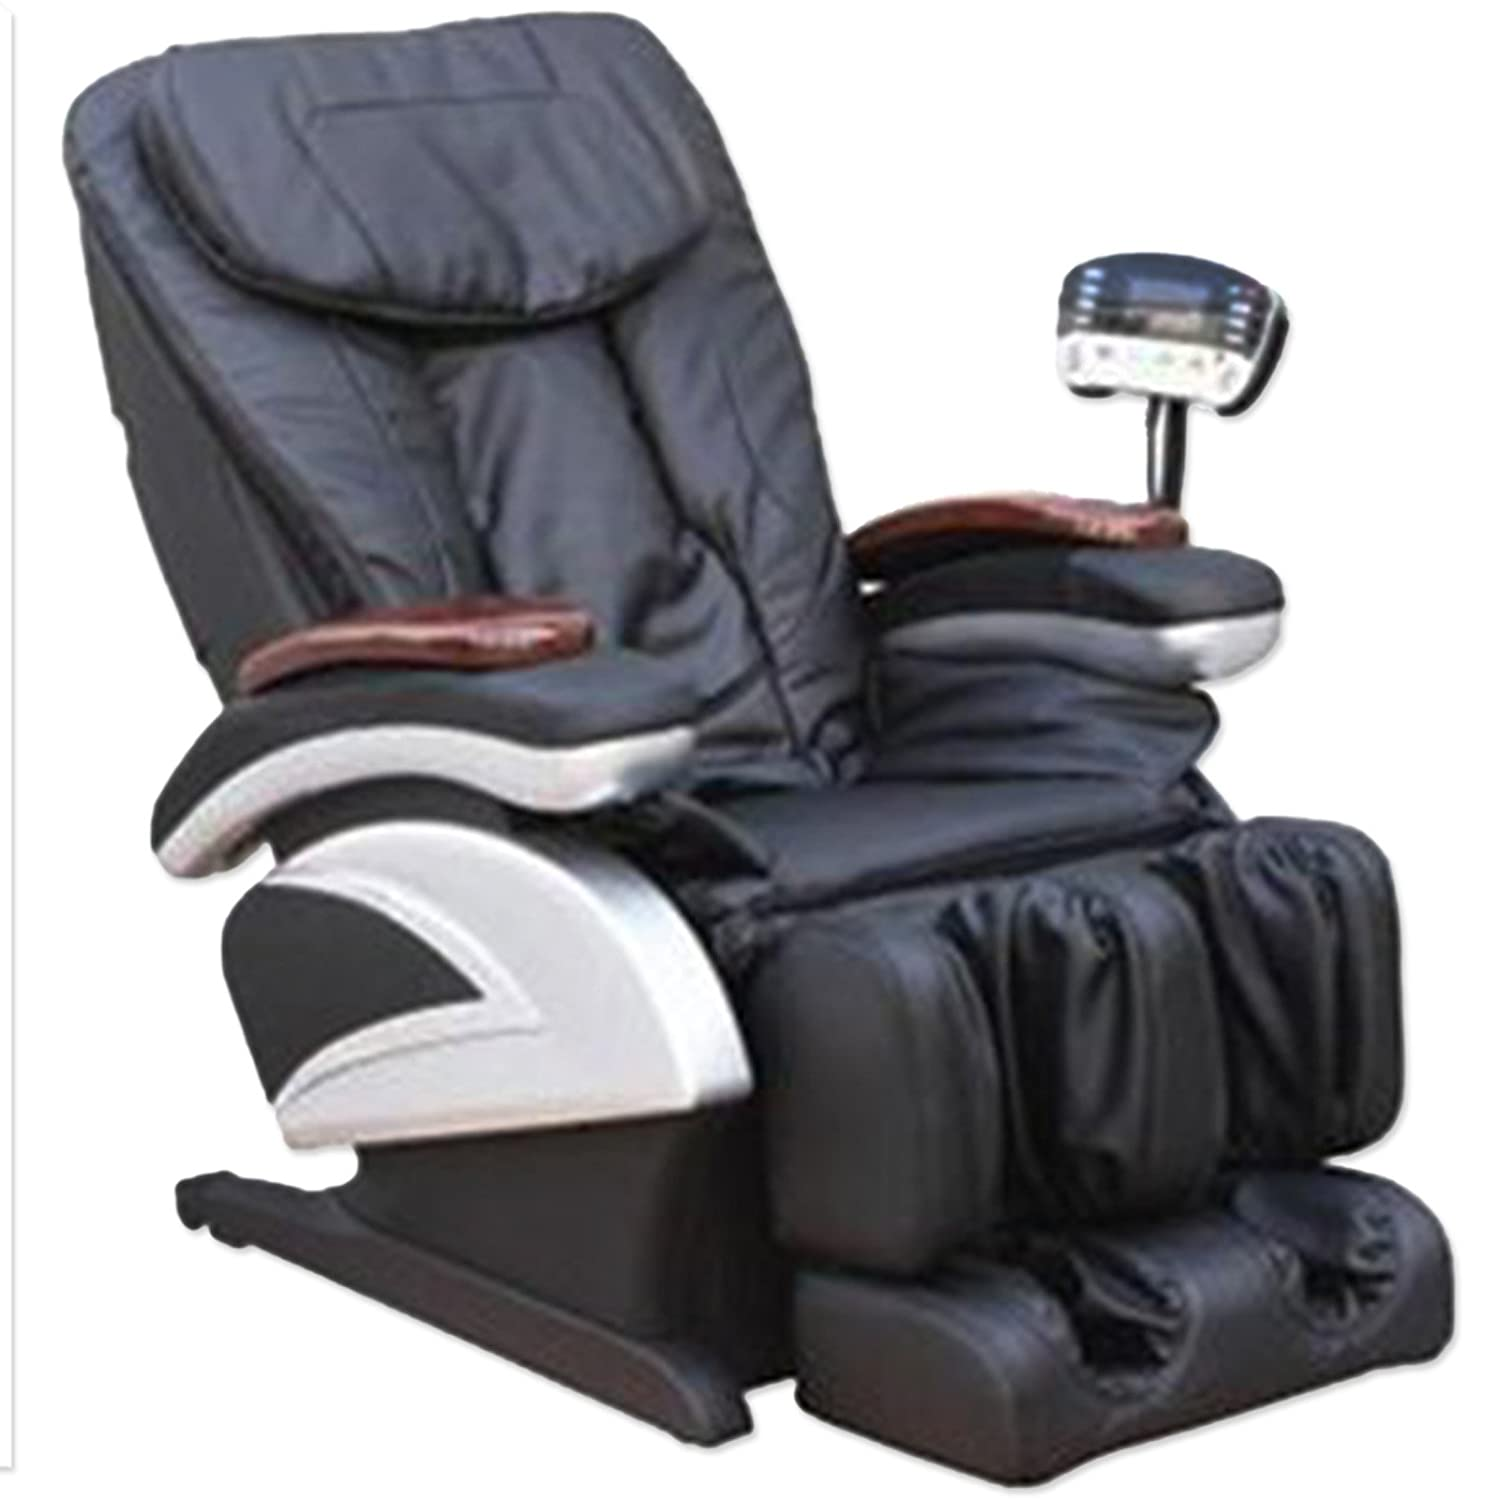 Charmant Amazon.com : Black Full Body Shiatsu Massage Recliner Chair Heater Foot  Rest Salon Spa Office Home : Everything Else